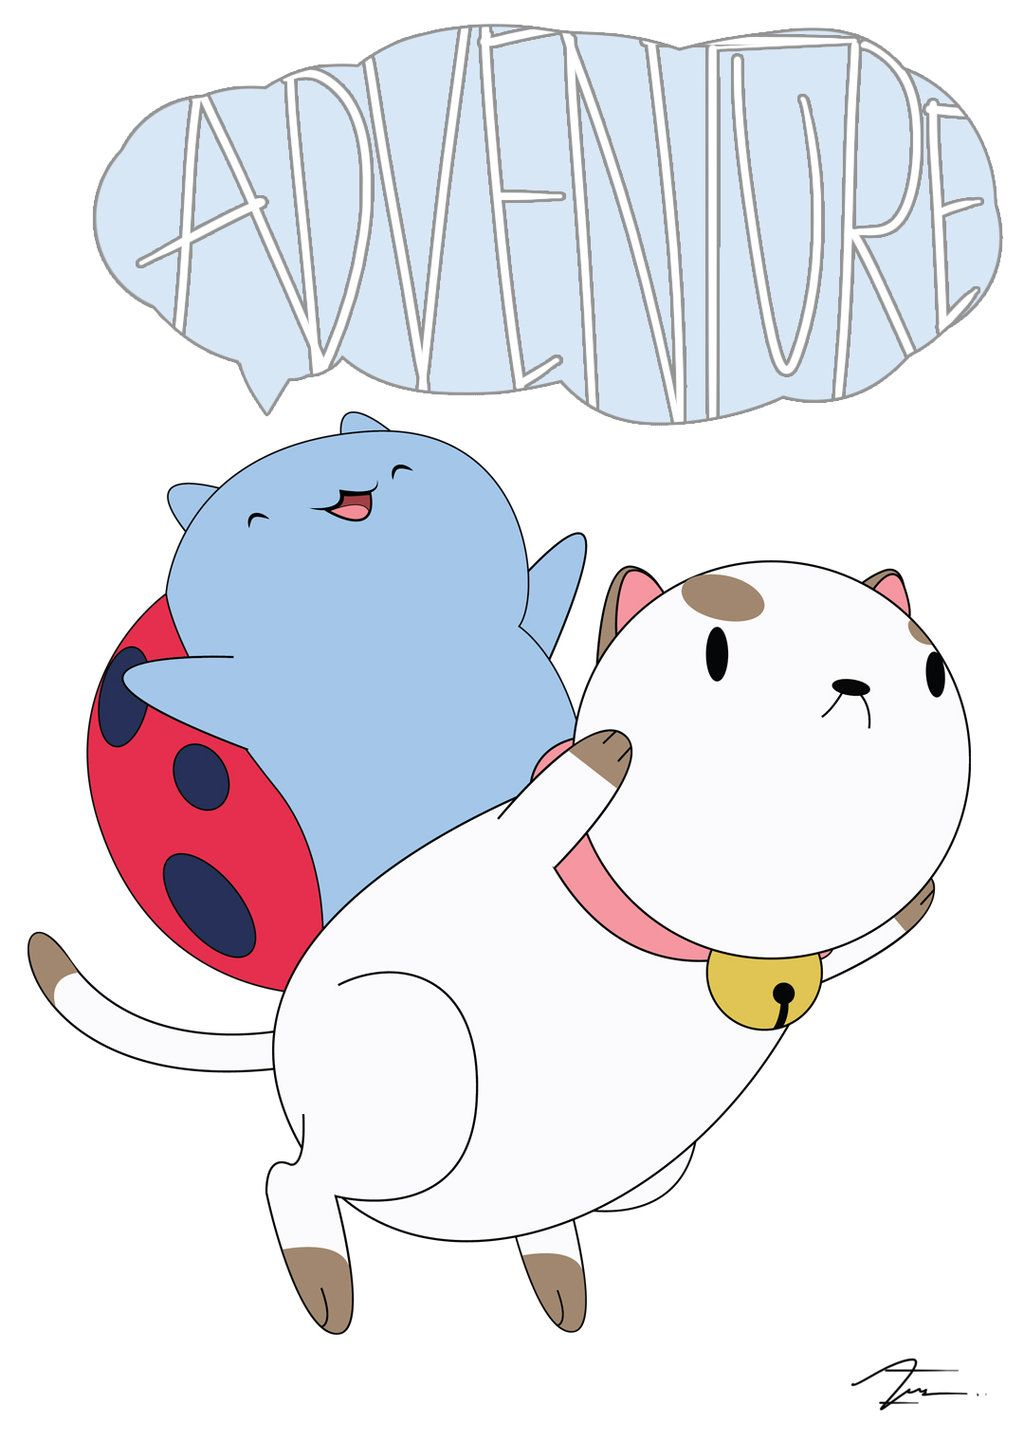 2 Of My Favourite Characters From Cartoon Hangover Catbug And Puppycat